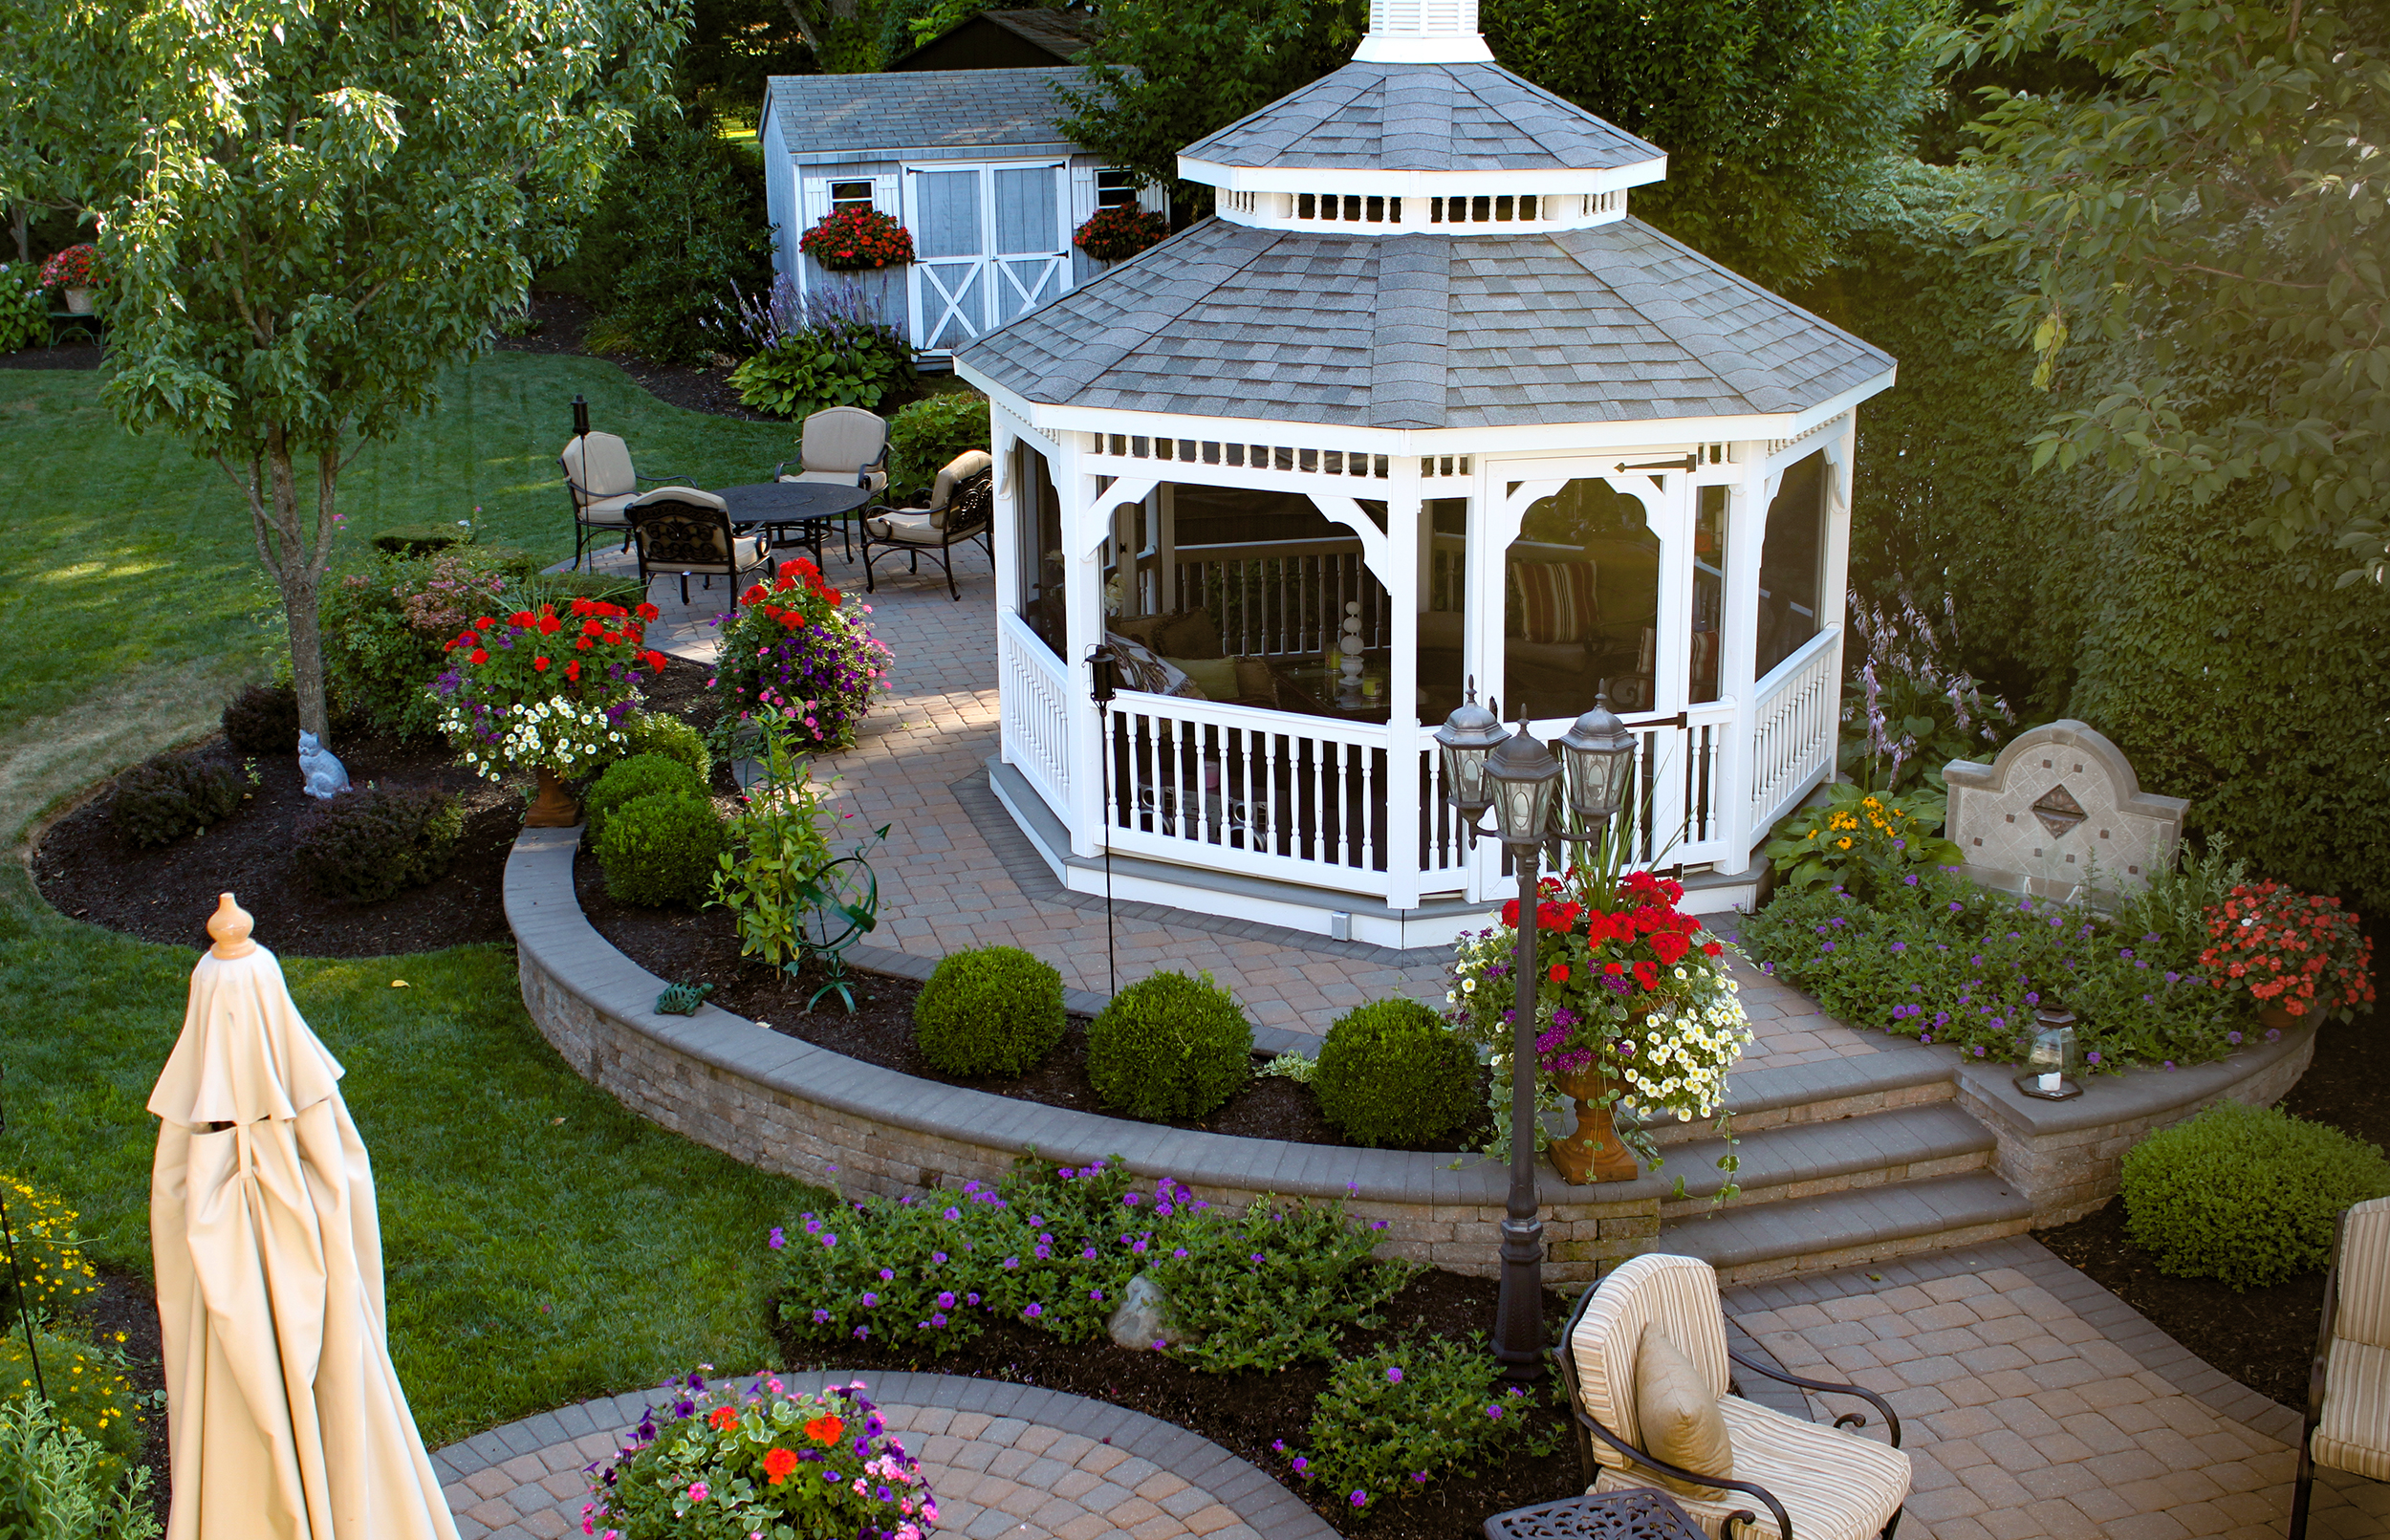 Octagon Gazebo Paver Patio